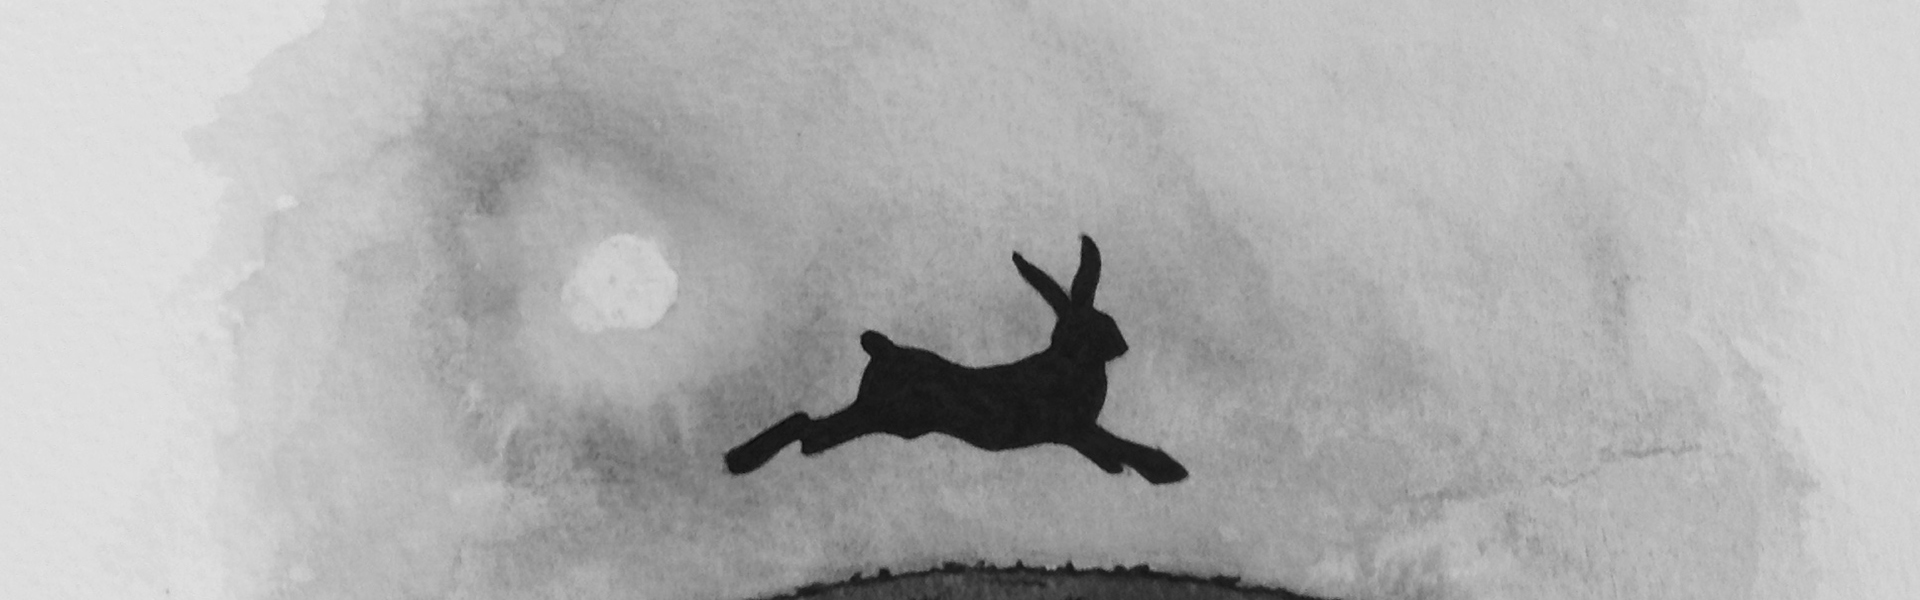 British wildlife hare running over hill detail